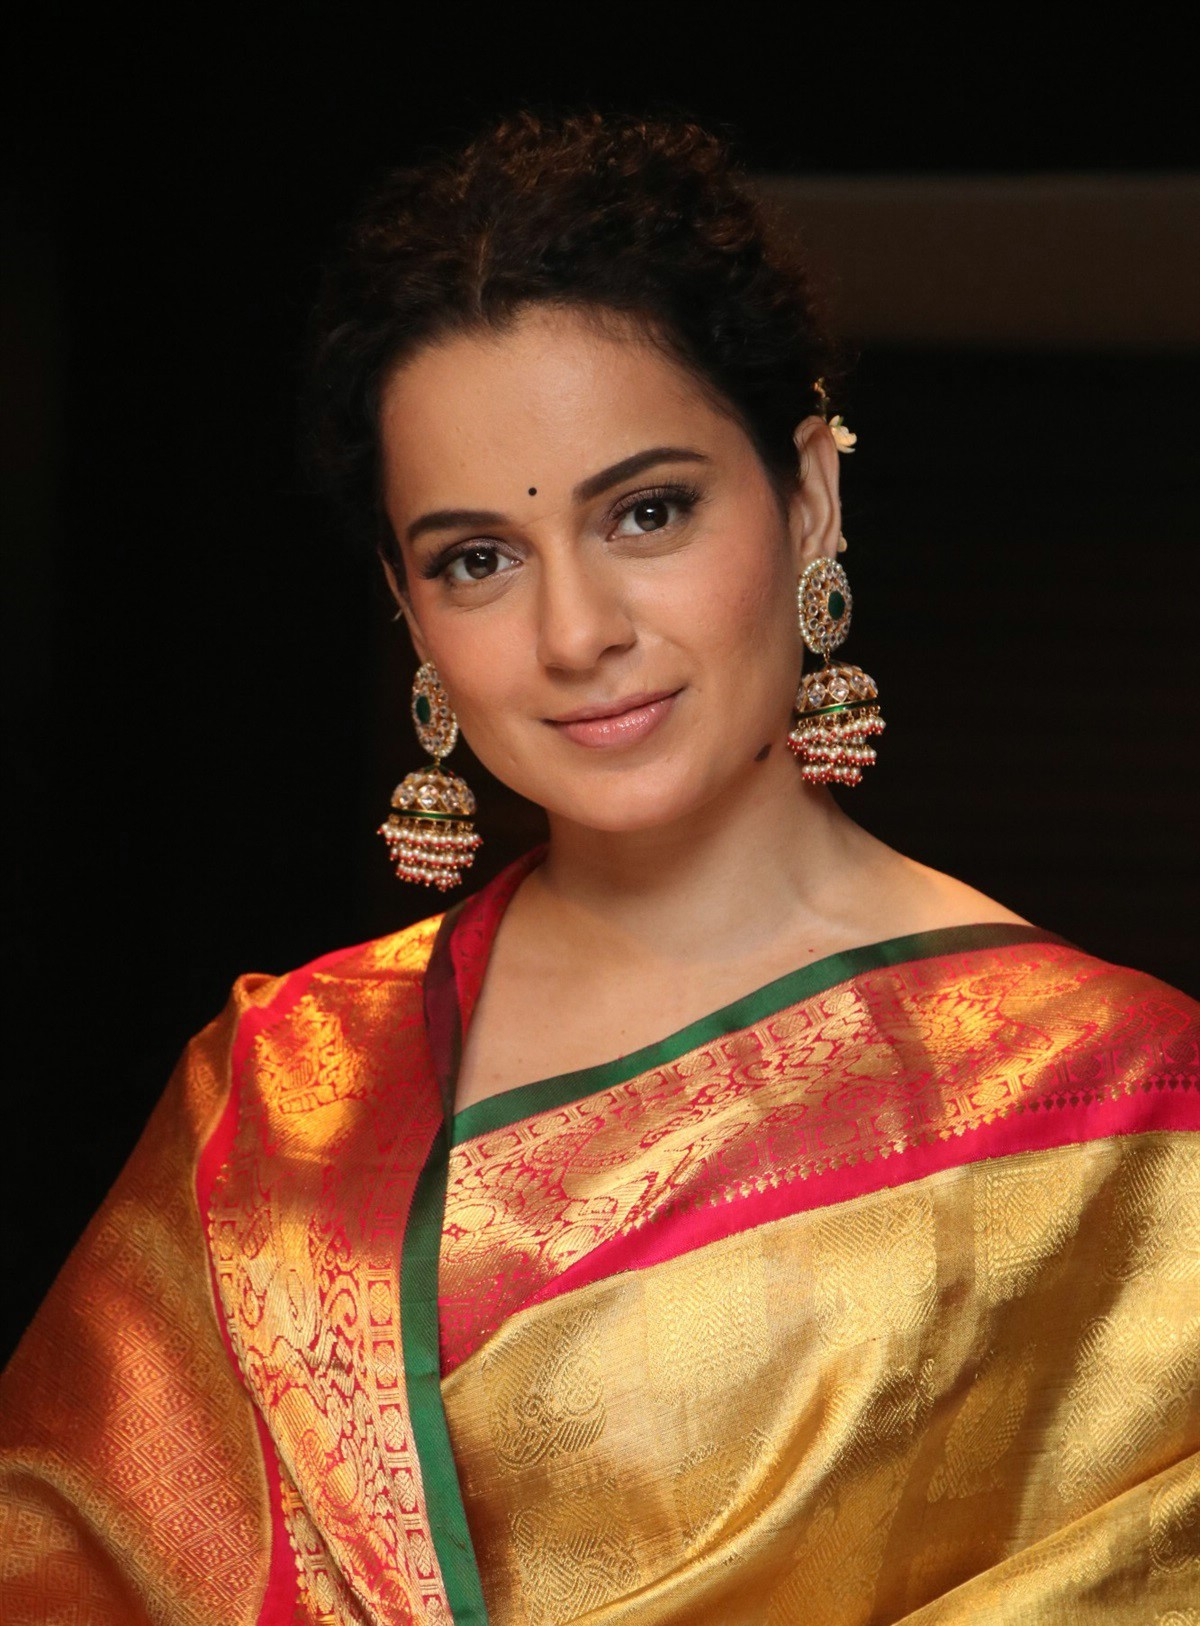 actress-kangana-ranaut-silk-saree-stills-3.